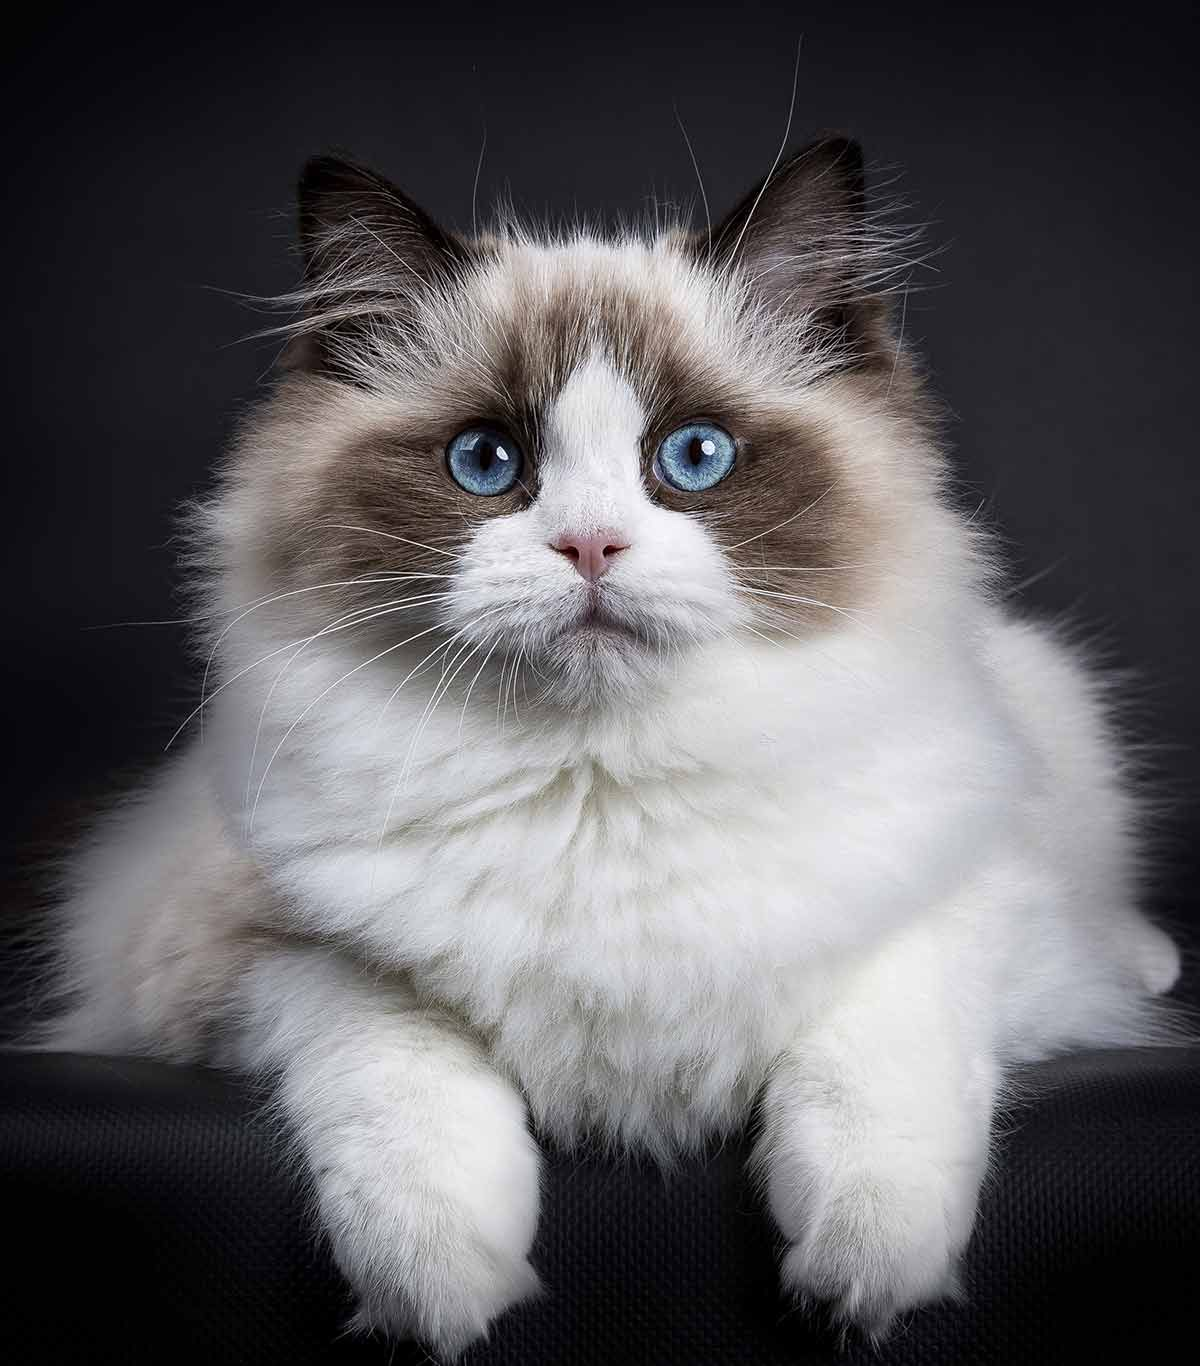 Best Food For Ragdoll Cats The Brands Breeders